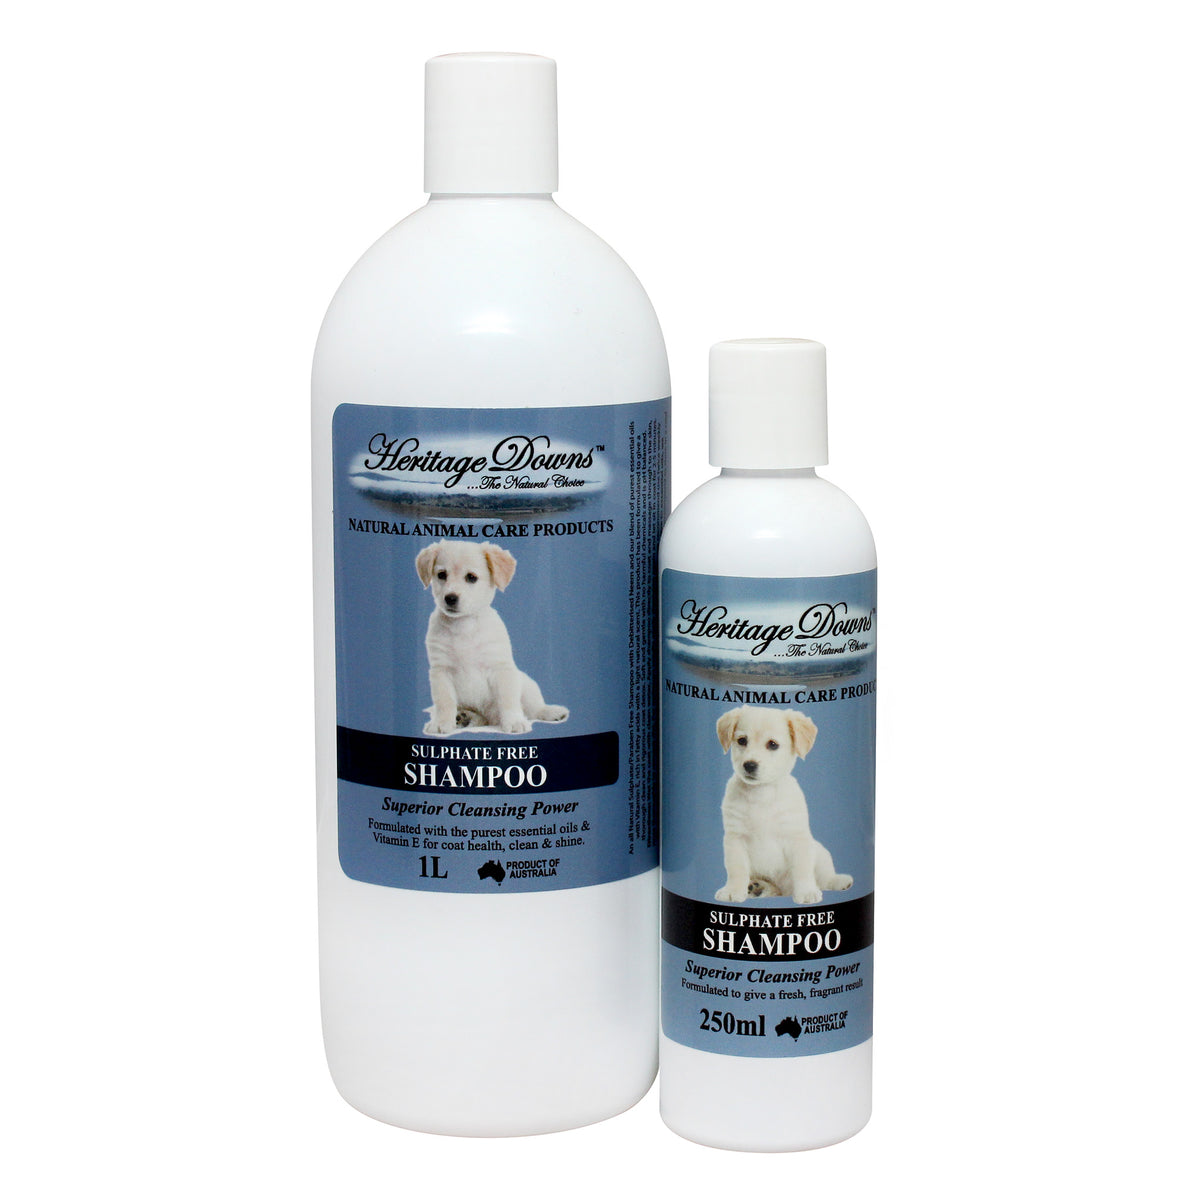 Heritage Downs Sulphate Free Pet Shampoo